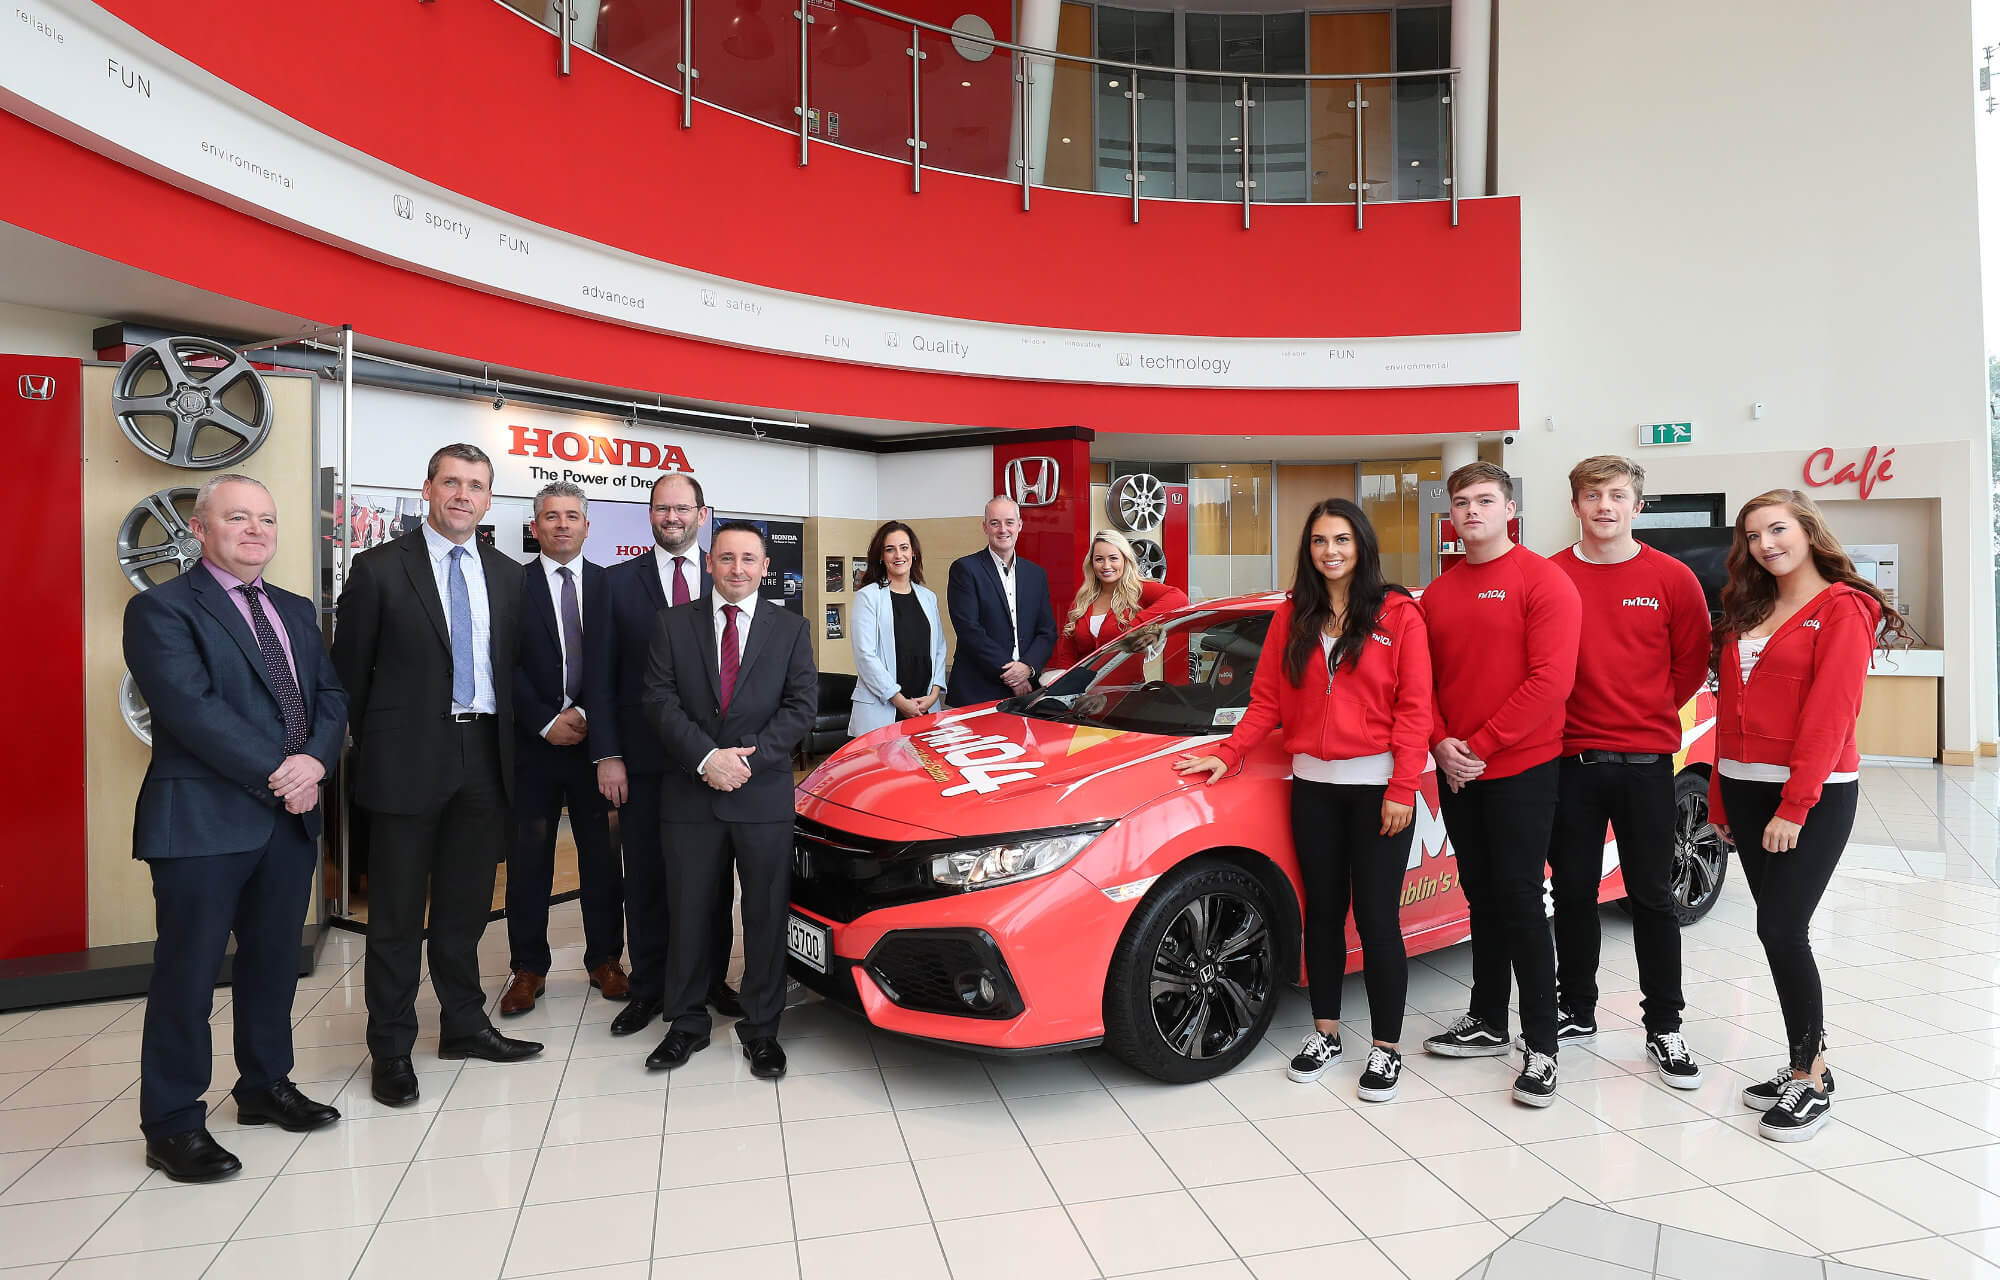 FM104 unveils new promotional team with Honda Civic